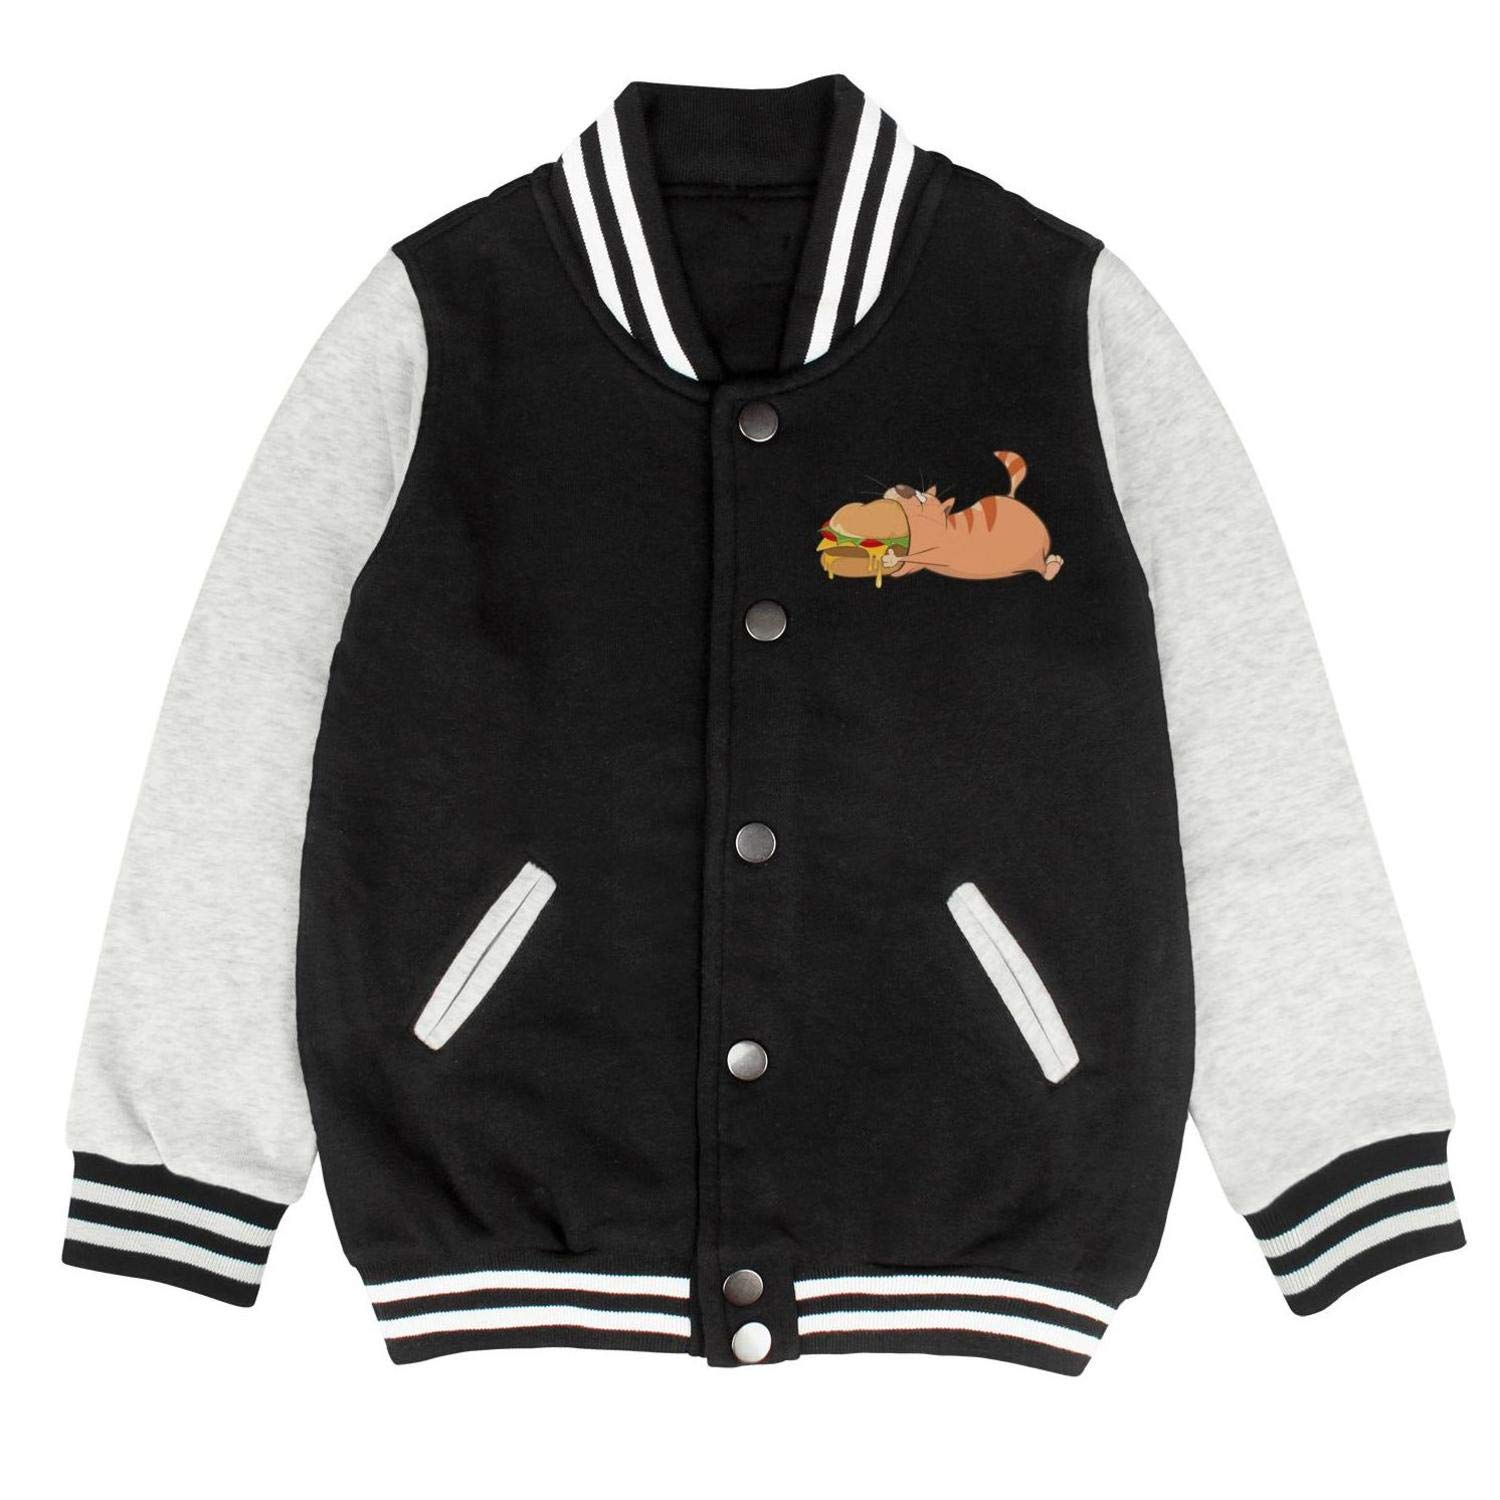 Real Men Love Cat Unisex Outerwear Jackets for Kids